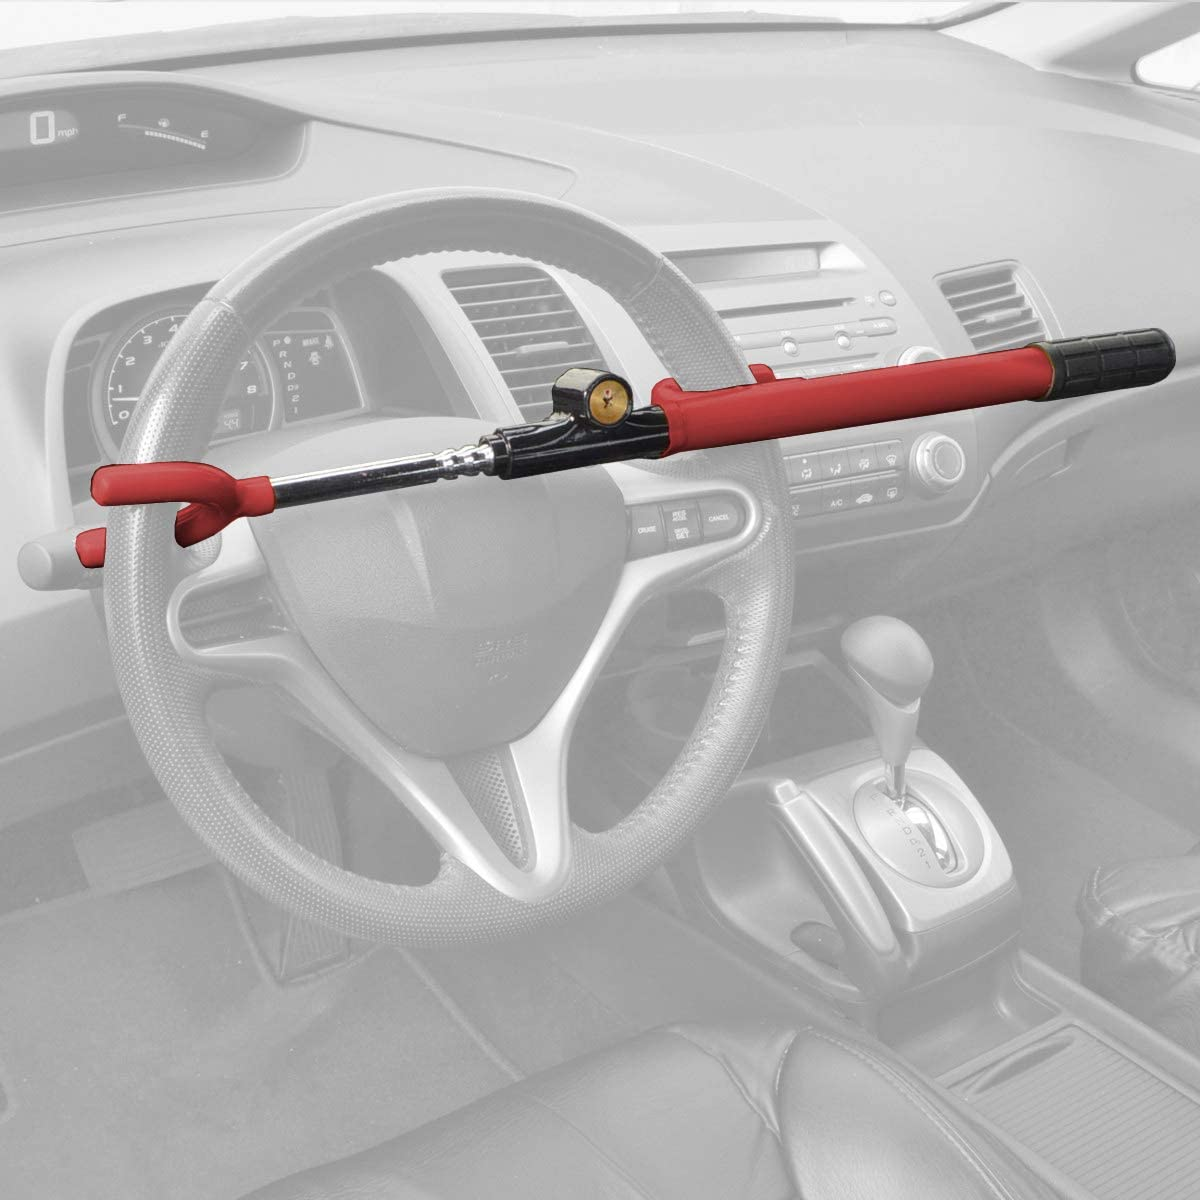 Amazing Tour Universal Car Steering Wheel Lock Anti-Theft Device Security System Double Hook